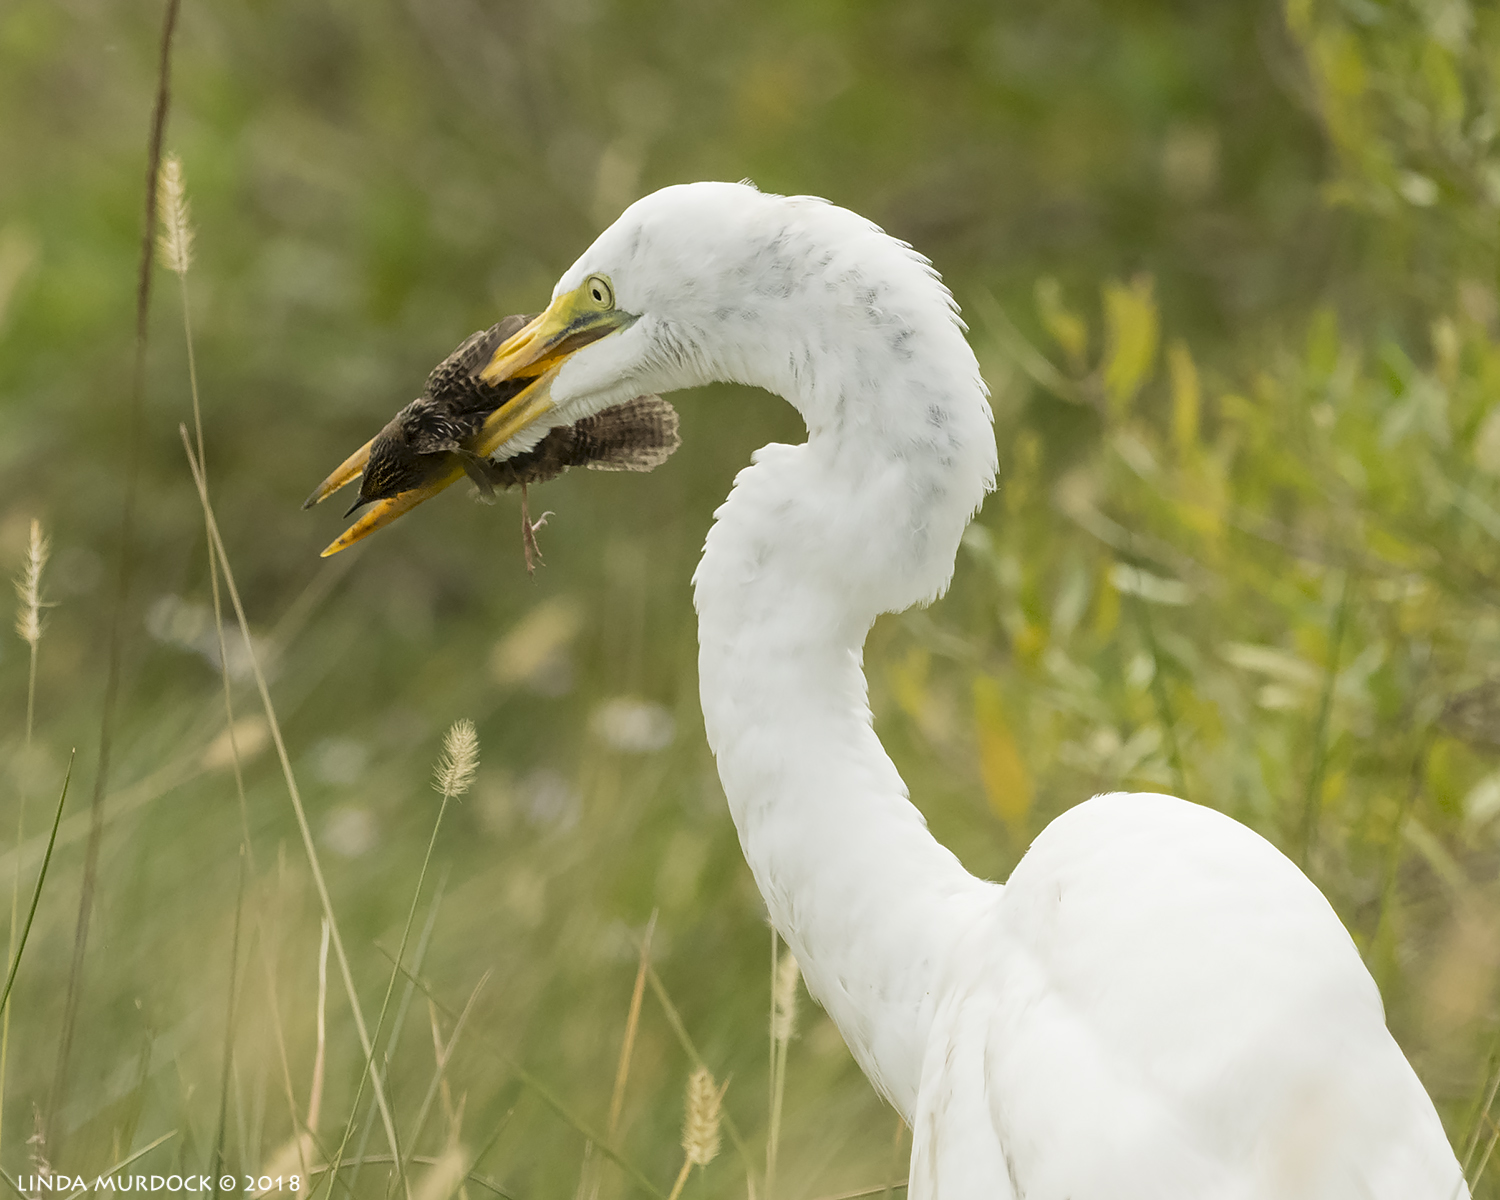 Great Egret with lunch…. Nikon D850 with NIKKOR 500mm f/4E VR ~ 1/3200 sec f/6.3 ISO 1000; hand-held